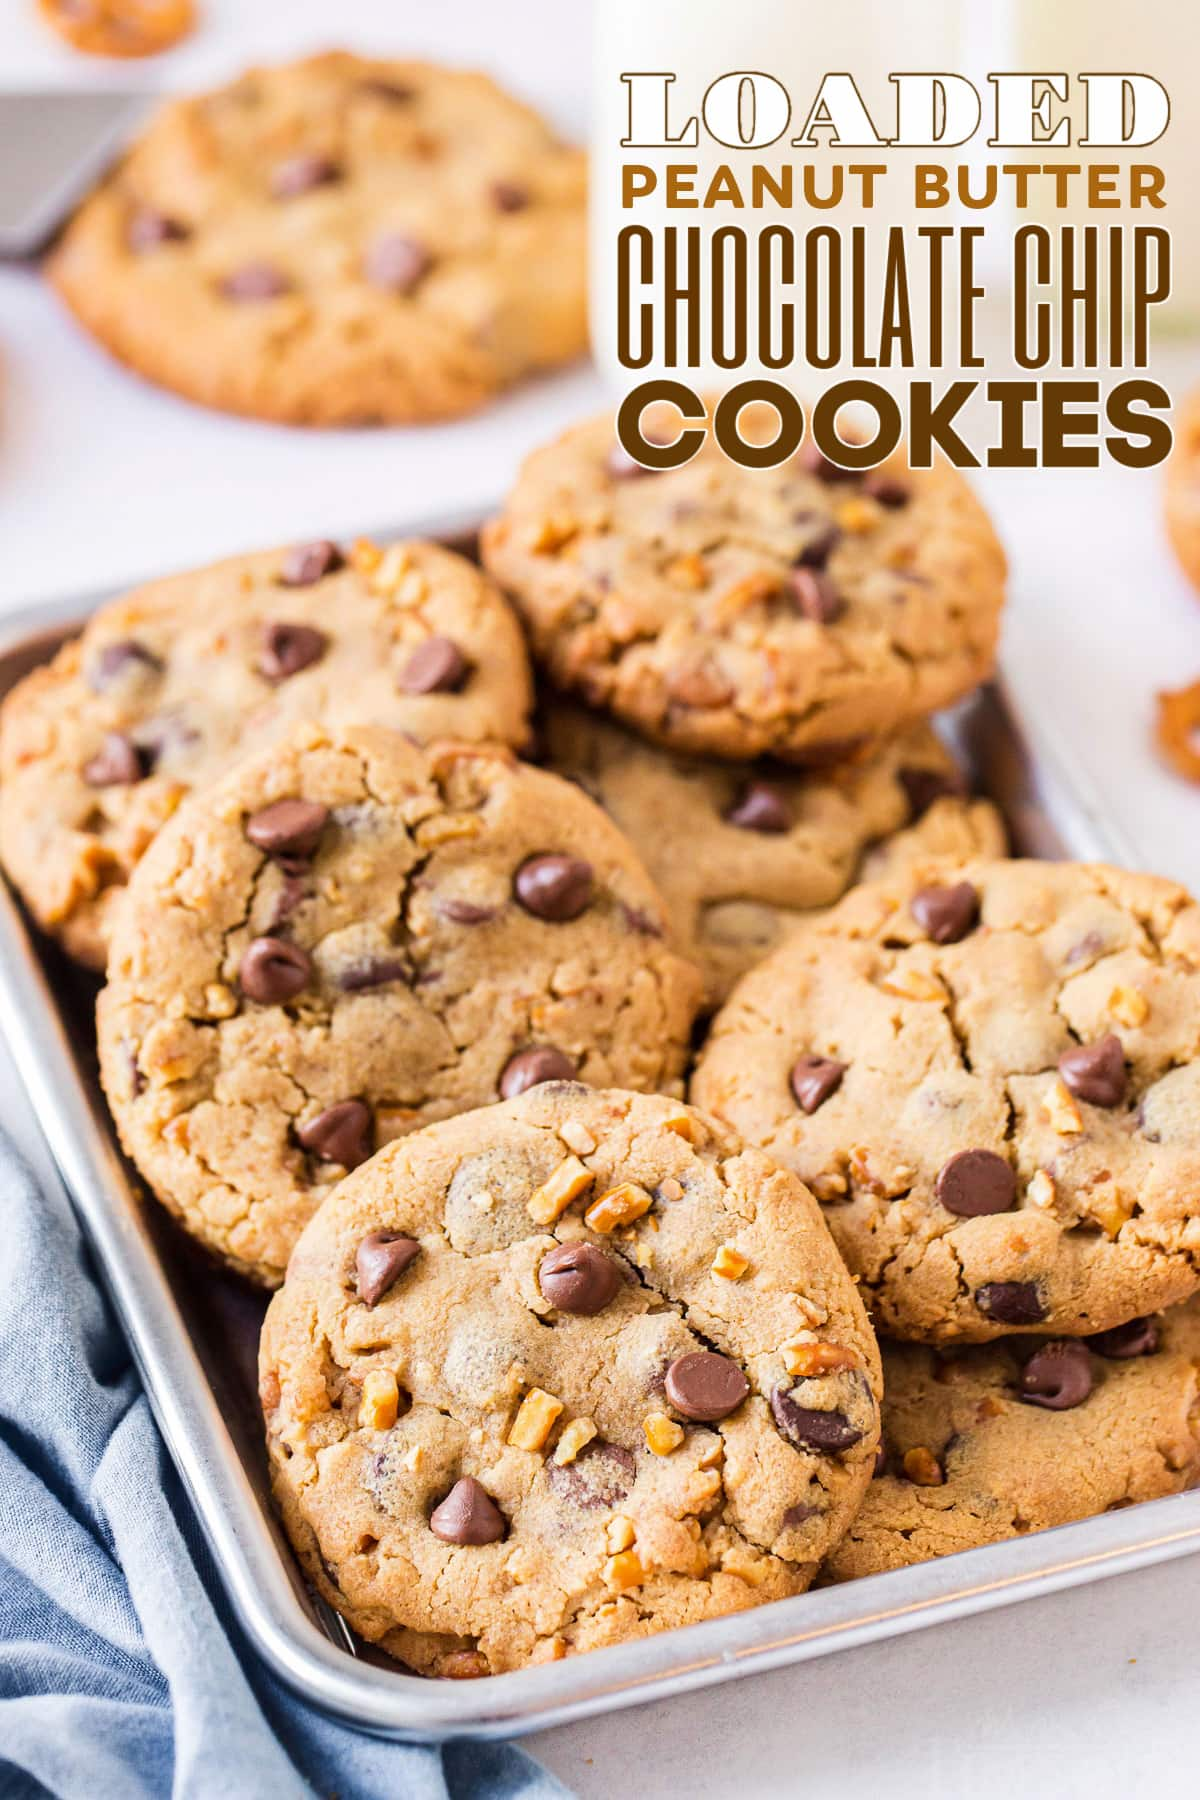 pile of loaded peanut butter chocolate chip cookies in eigth sheet pan with blue napkin front and text overlay at top